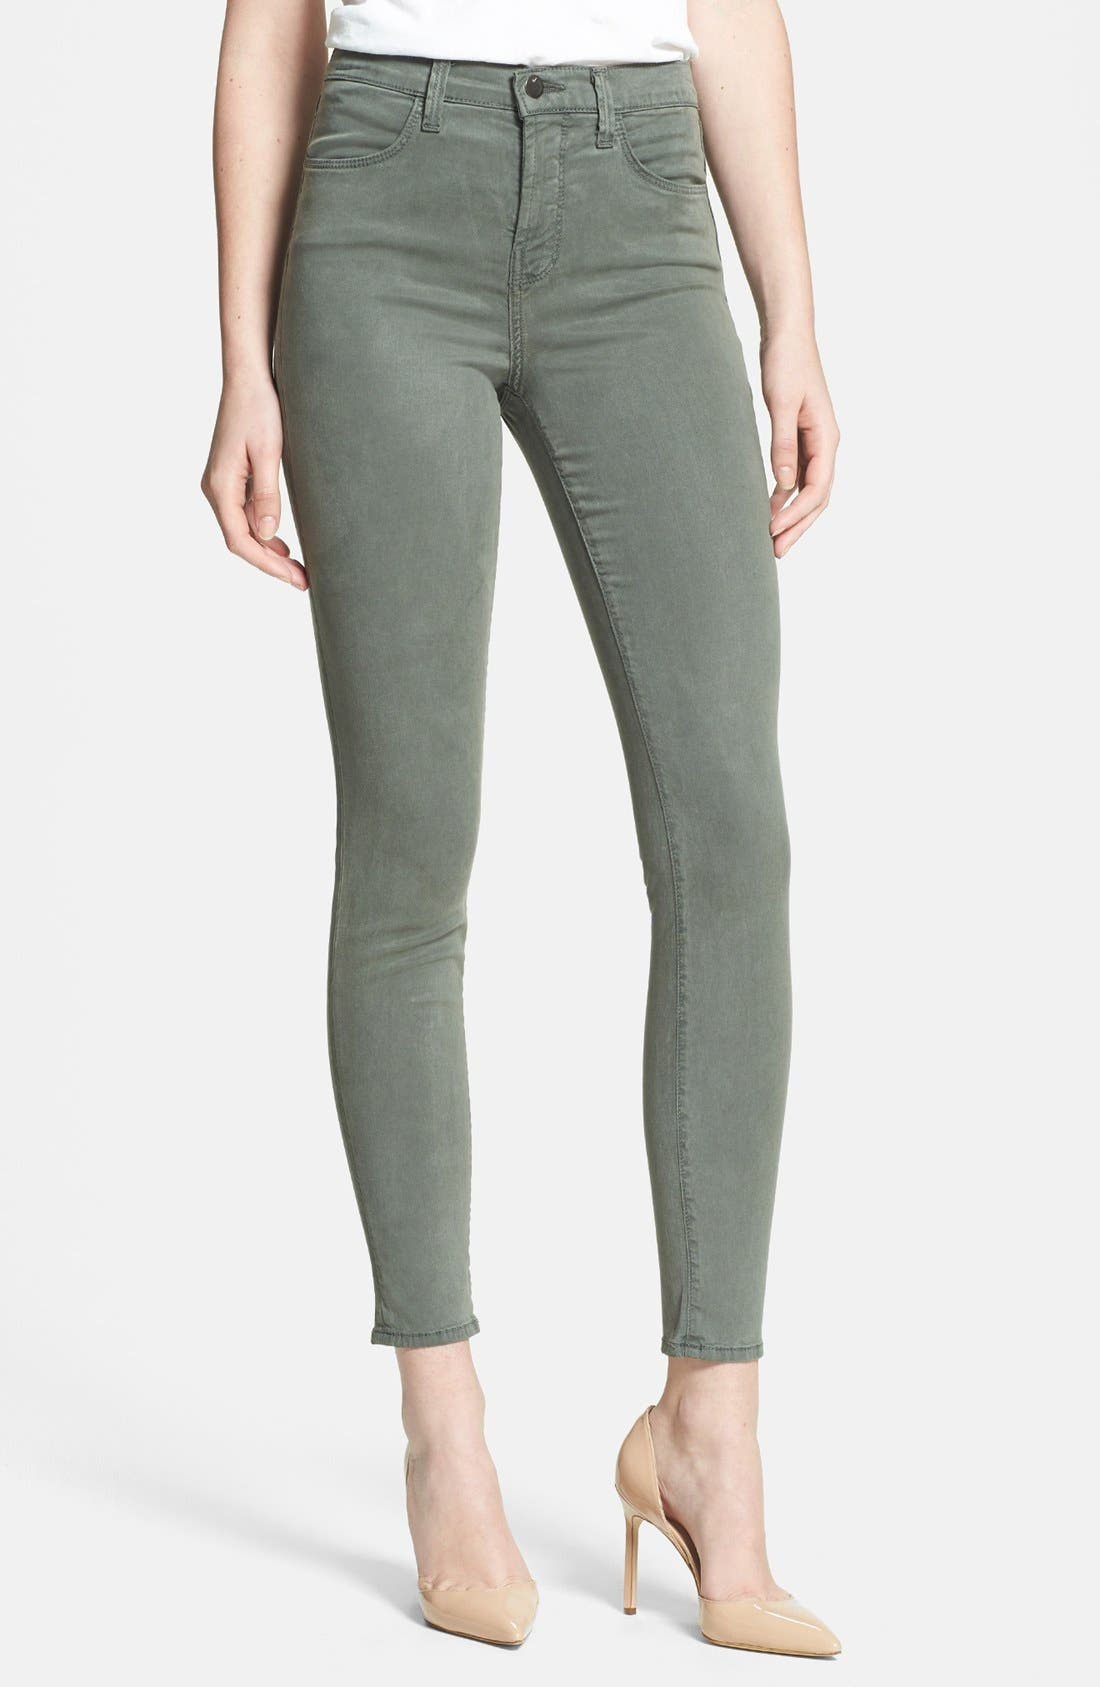 Alternate Image 1 Selected - J Brand 'Maria 2311' High Rise Skinny Jeans (Sprucestone)